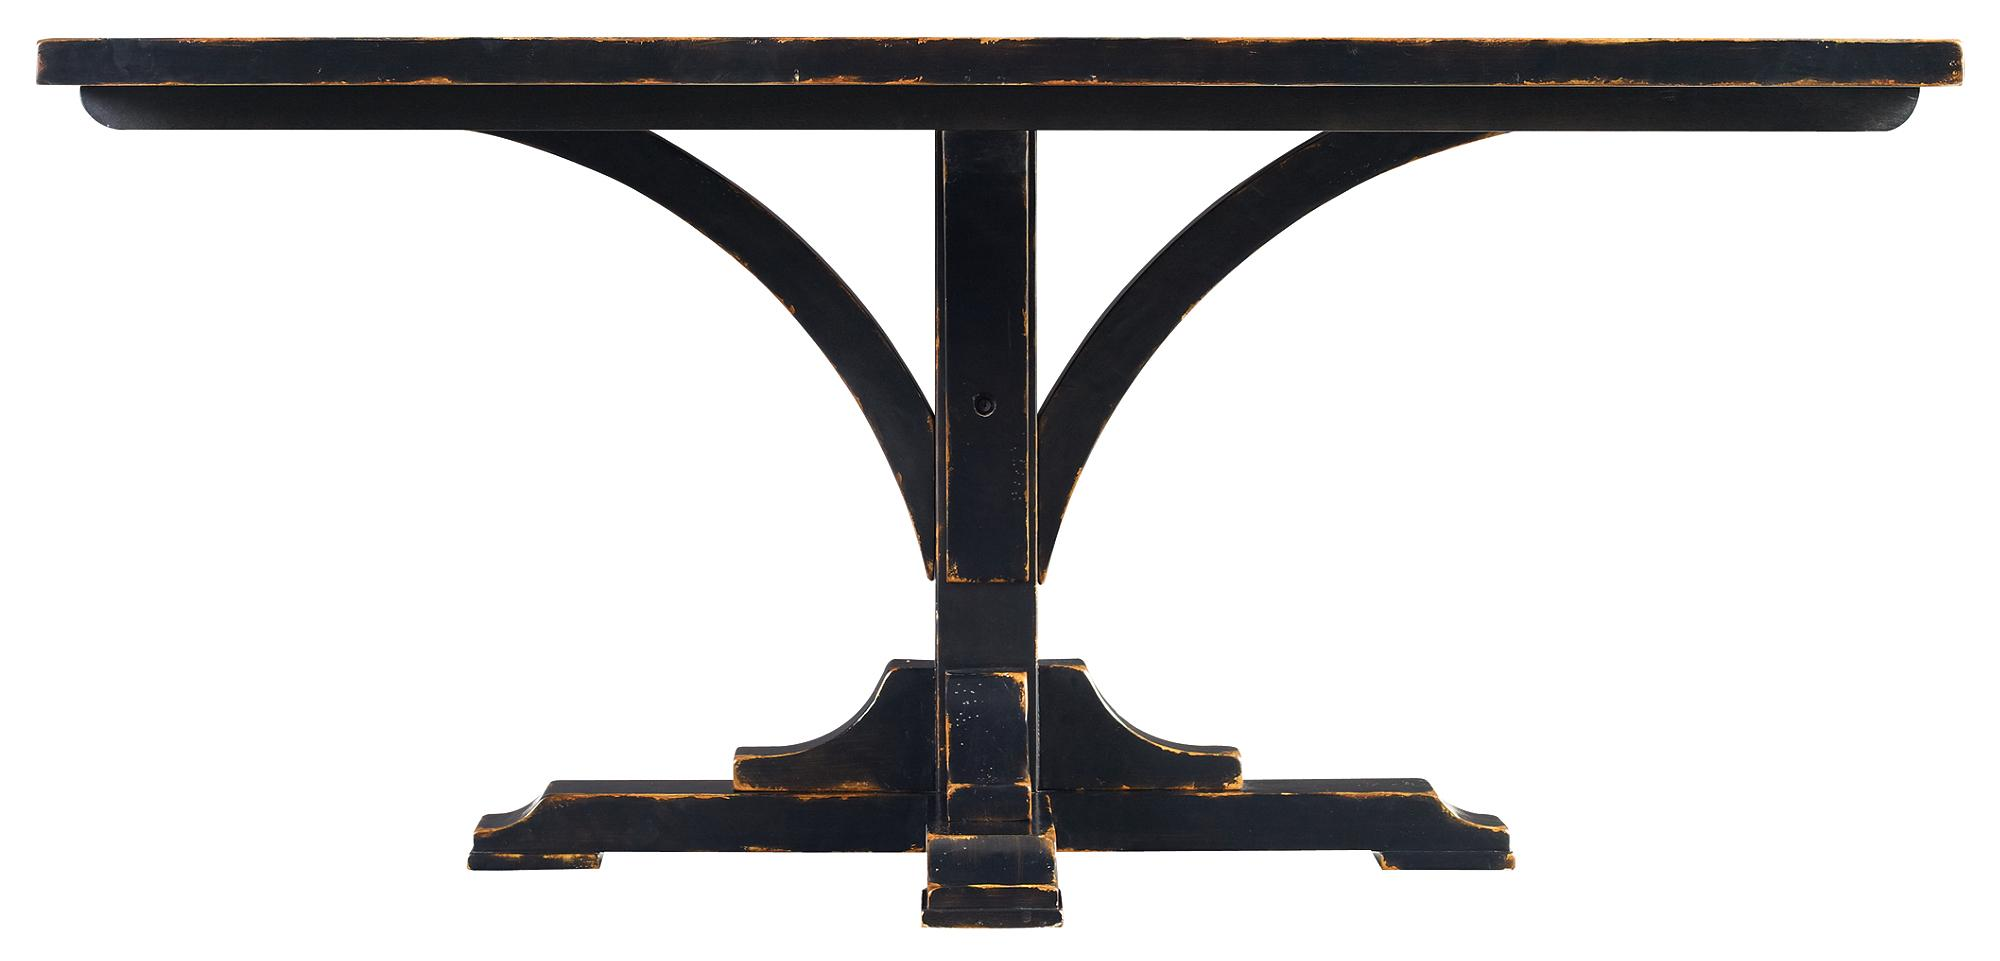 Stanley Furniture The Classic Portfolio Artisan Pedestal Table - Item Number: 135-81-236+136